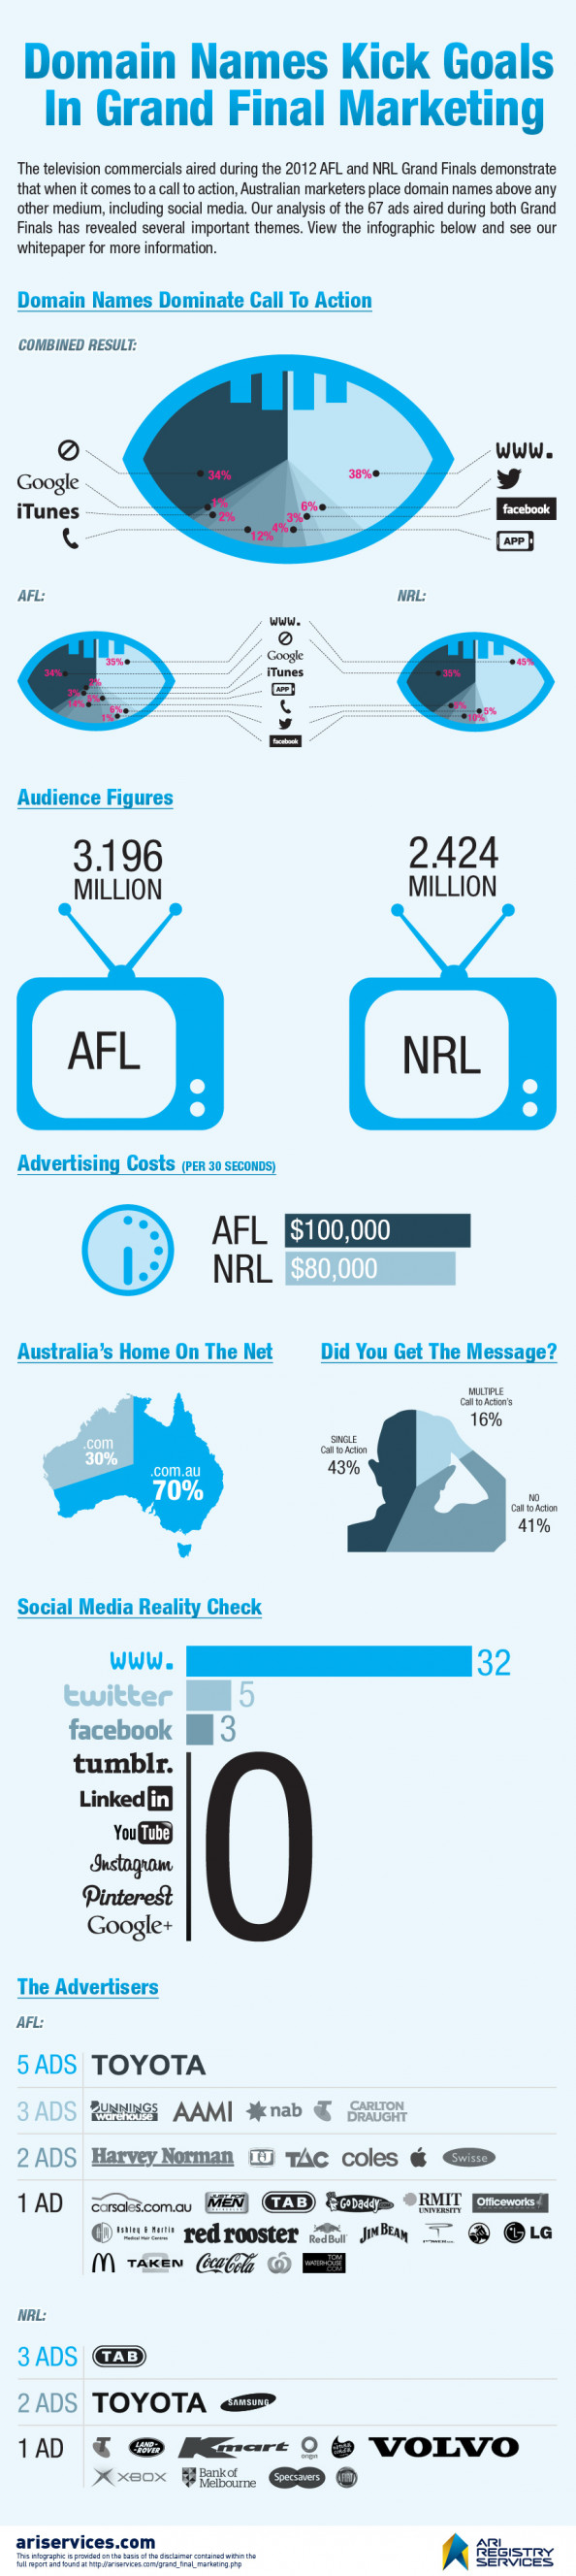 Domain Names Kick Goals In Grand Final Marketing Infographic